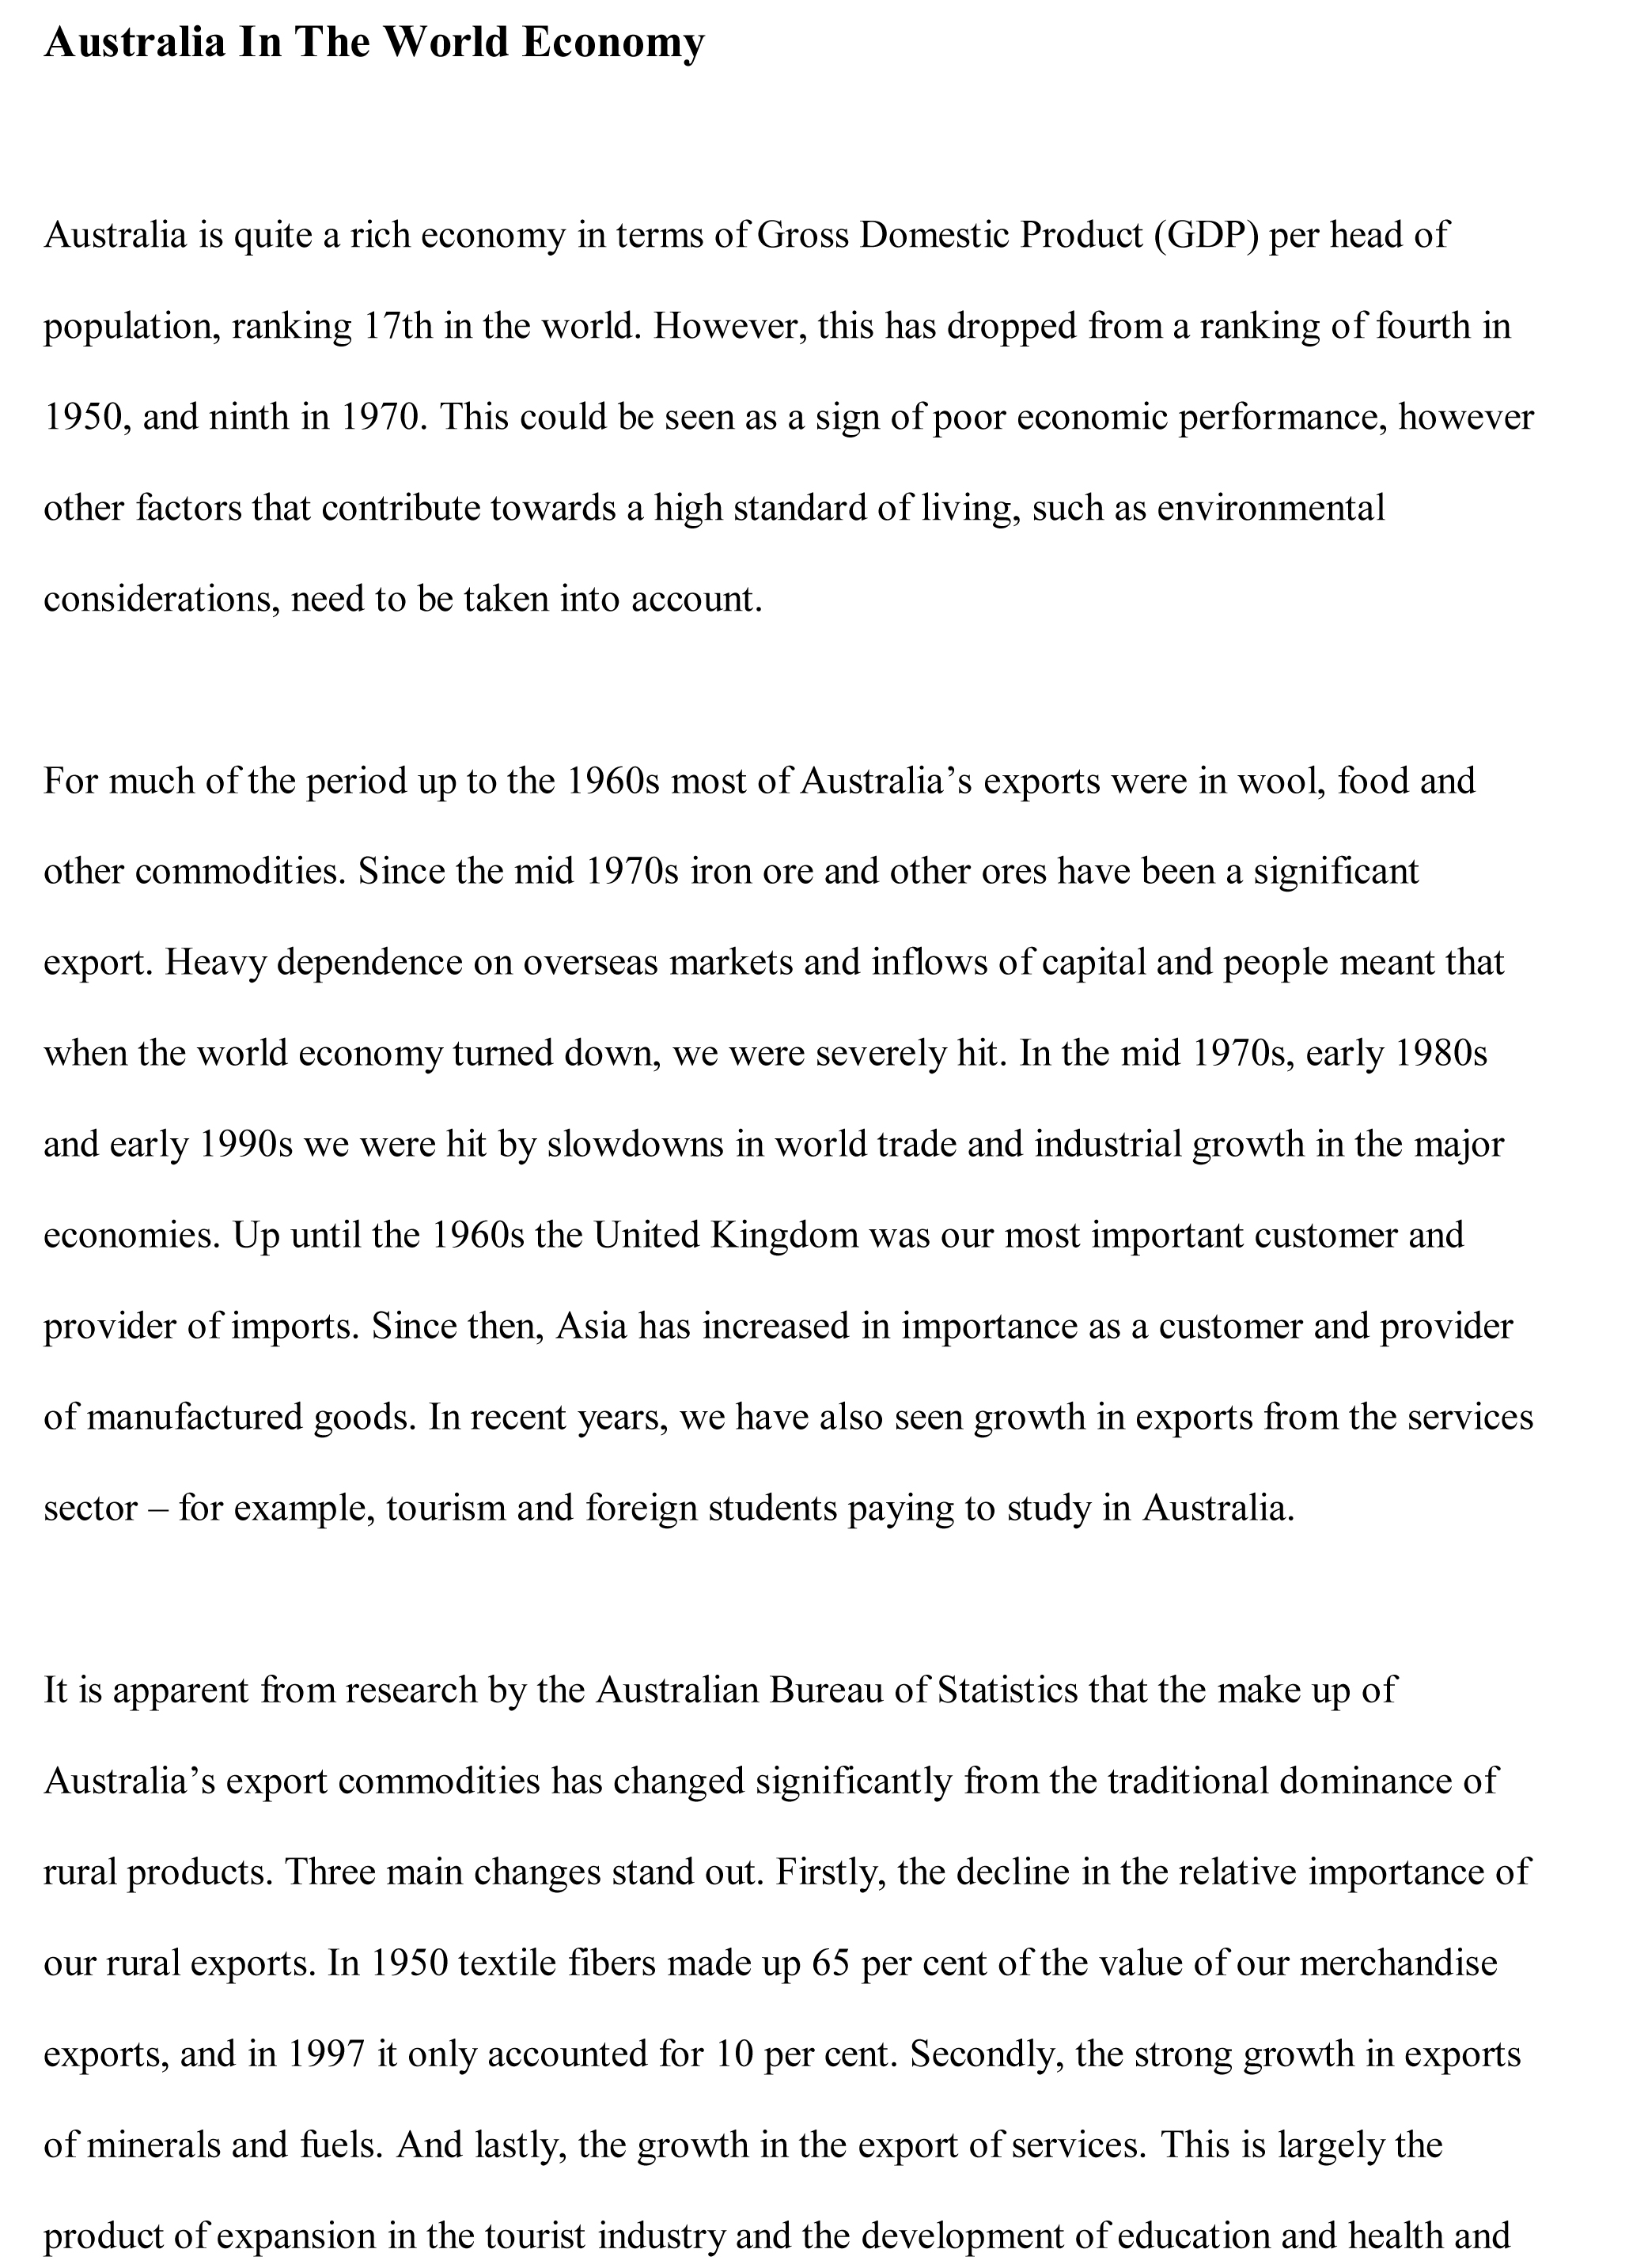 014 Essay Example How To Essays Economics Free Excellent Write An Expository For 4th Grade Make Longer With Words Start Introduction Full